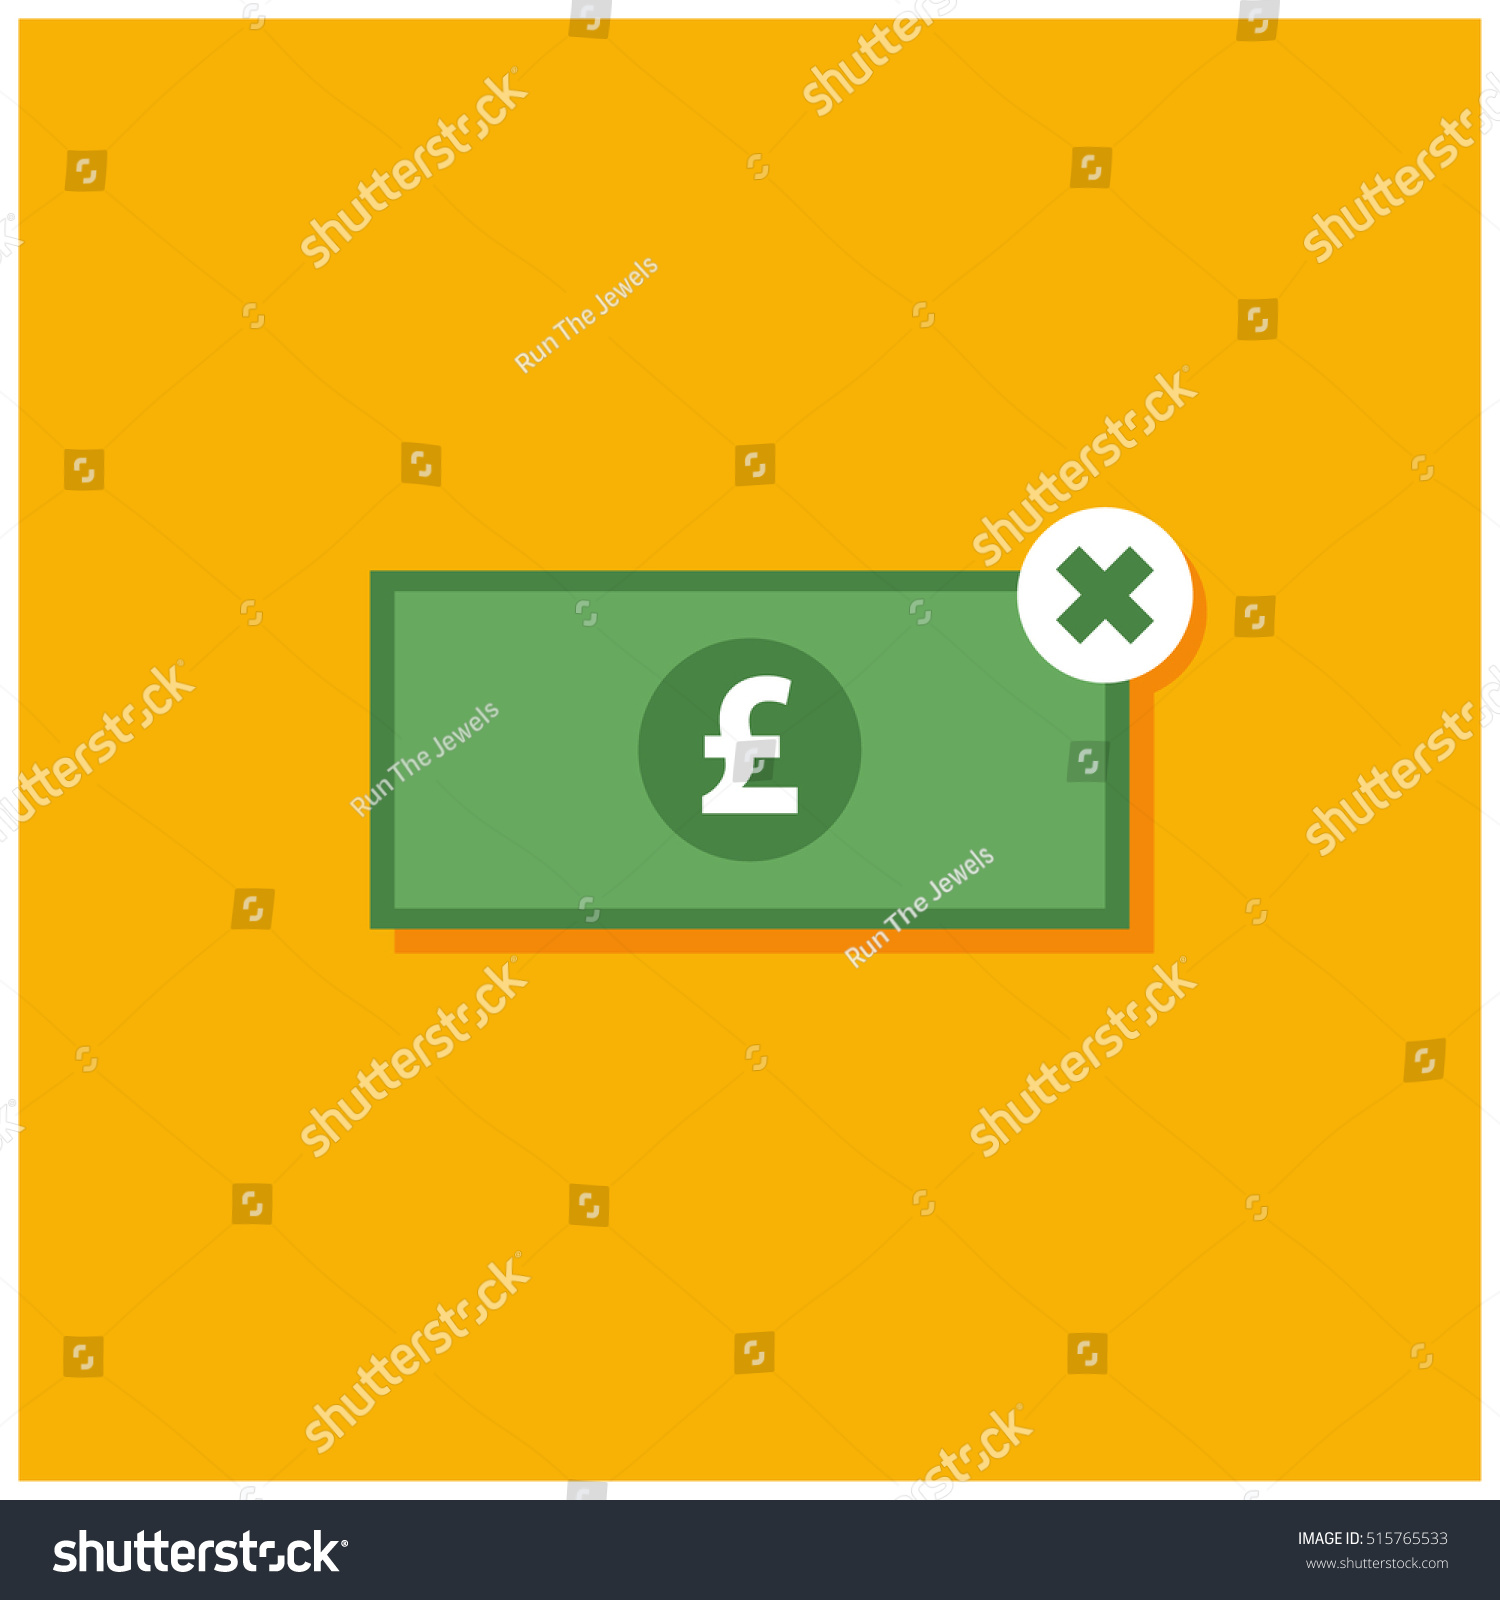 Rs currency symbol images symbol and sign ideas no money pound sign gbp currency stock vector 515765533 shutterstock no money pound sign gbp currency buycottarizona Choice Image